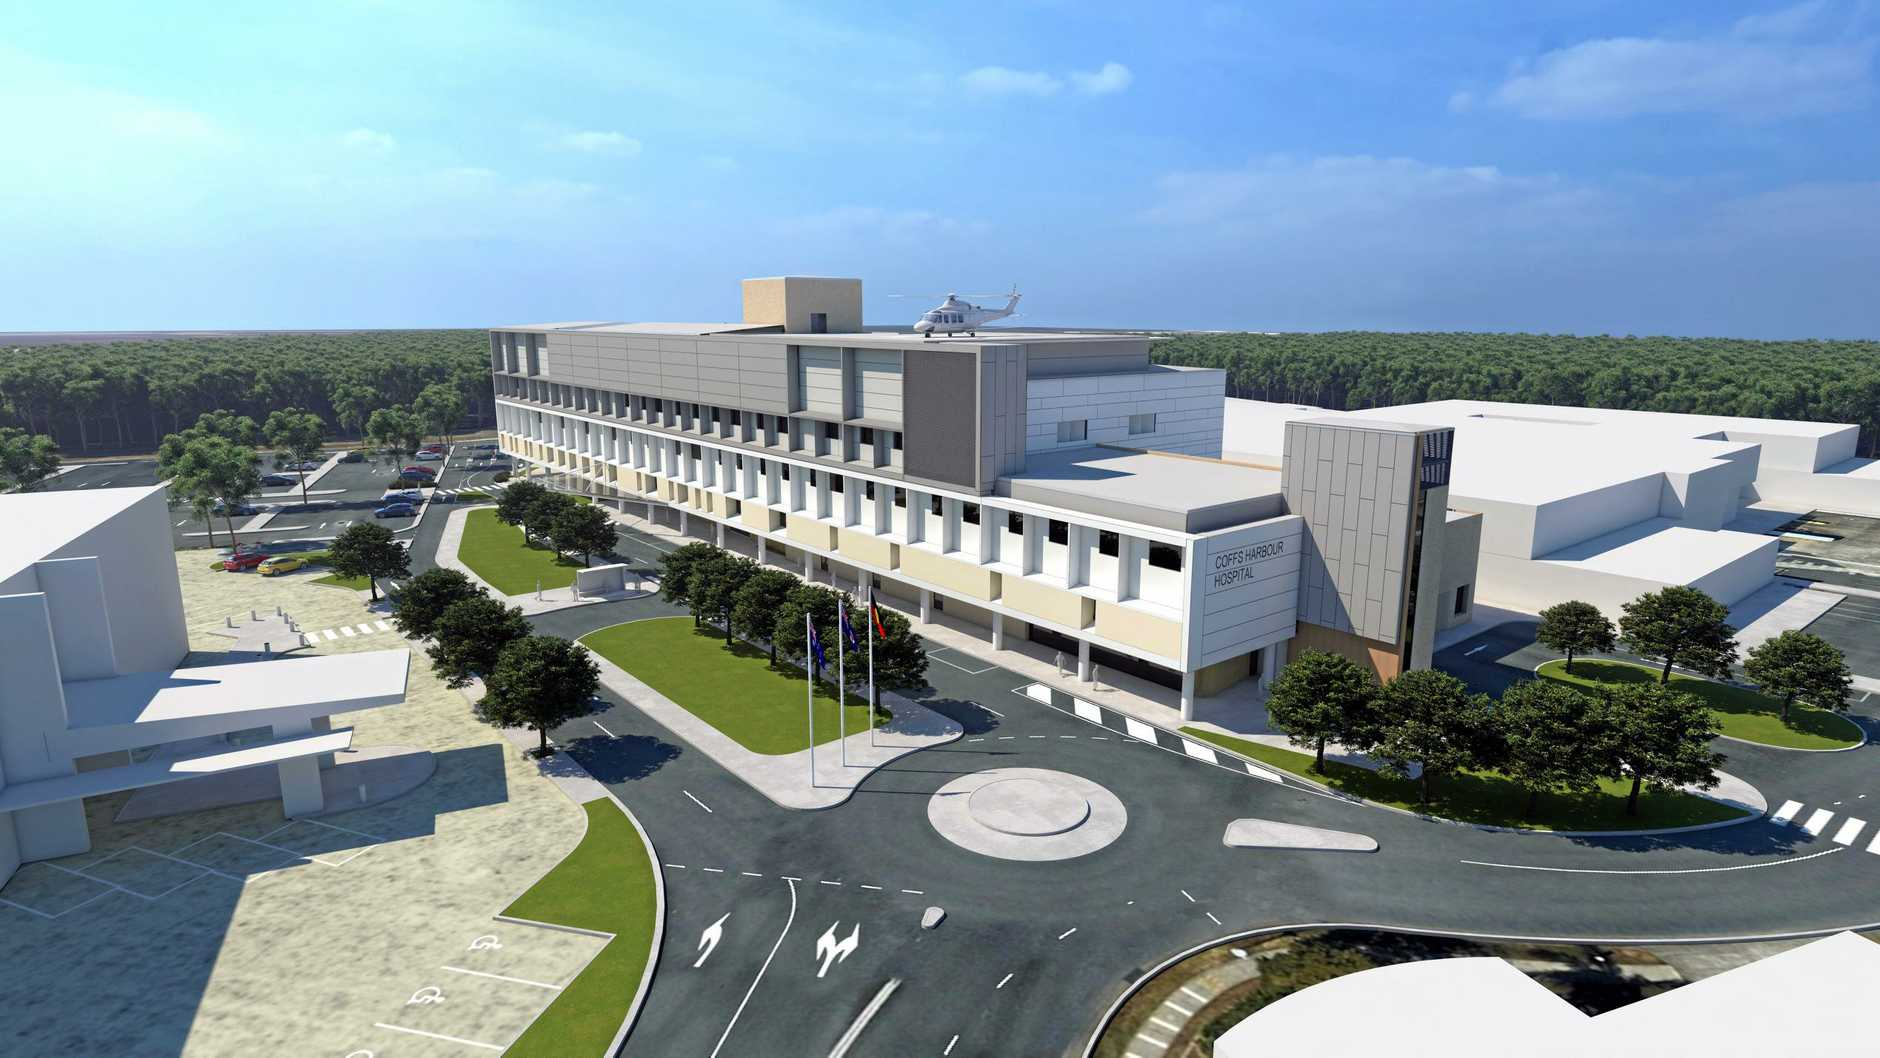 An artist's impression of the planned $116 million upgrade of the Coffs Harbour Health Campus.